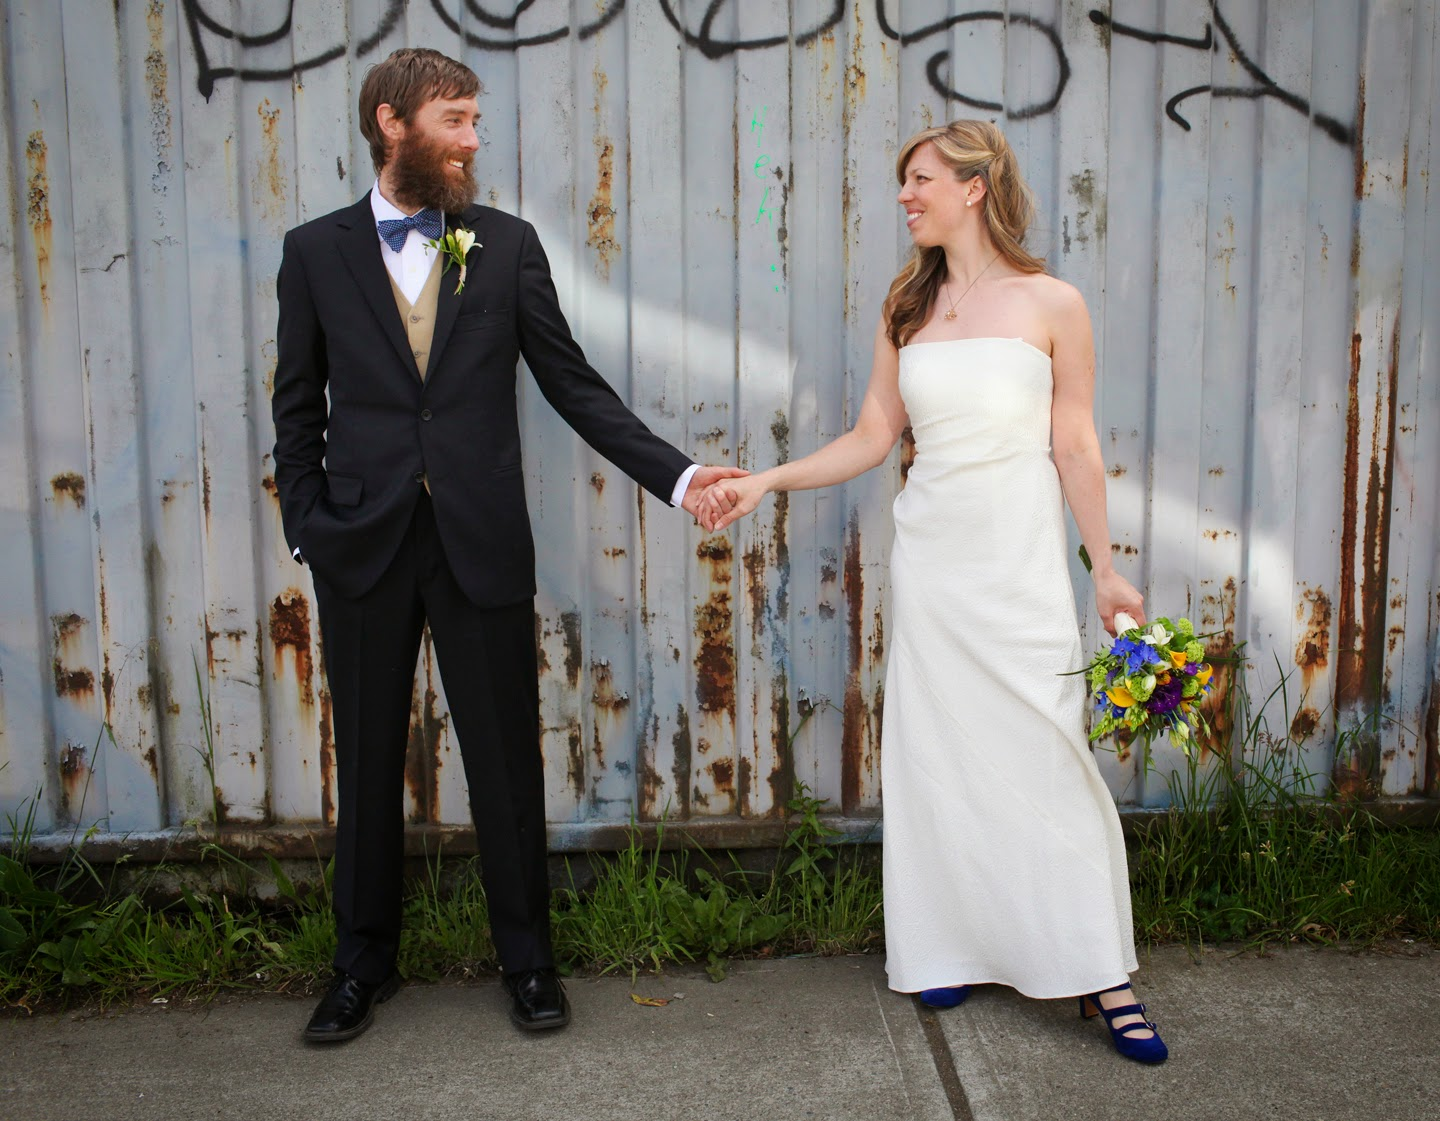 Molly and Brad wed at the Georgetown Ballroom - Patricia Stimac, Seattle Wedding Officiant